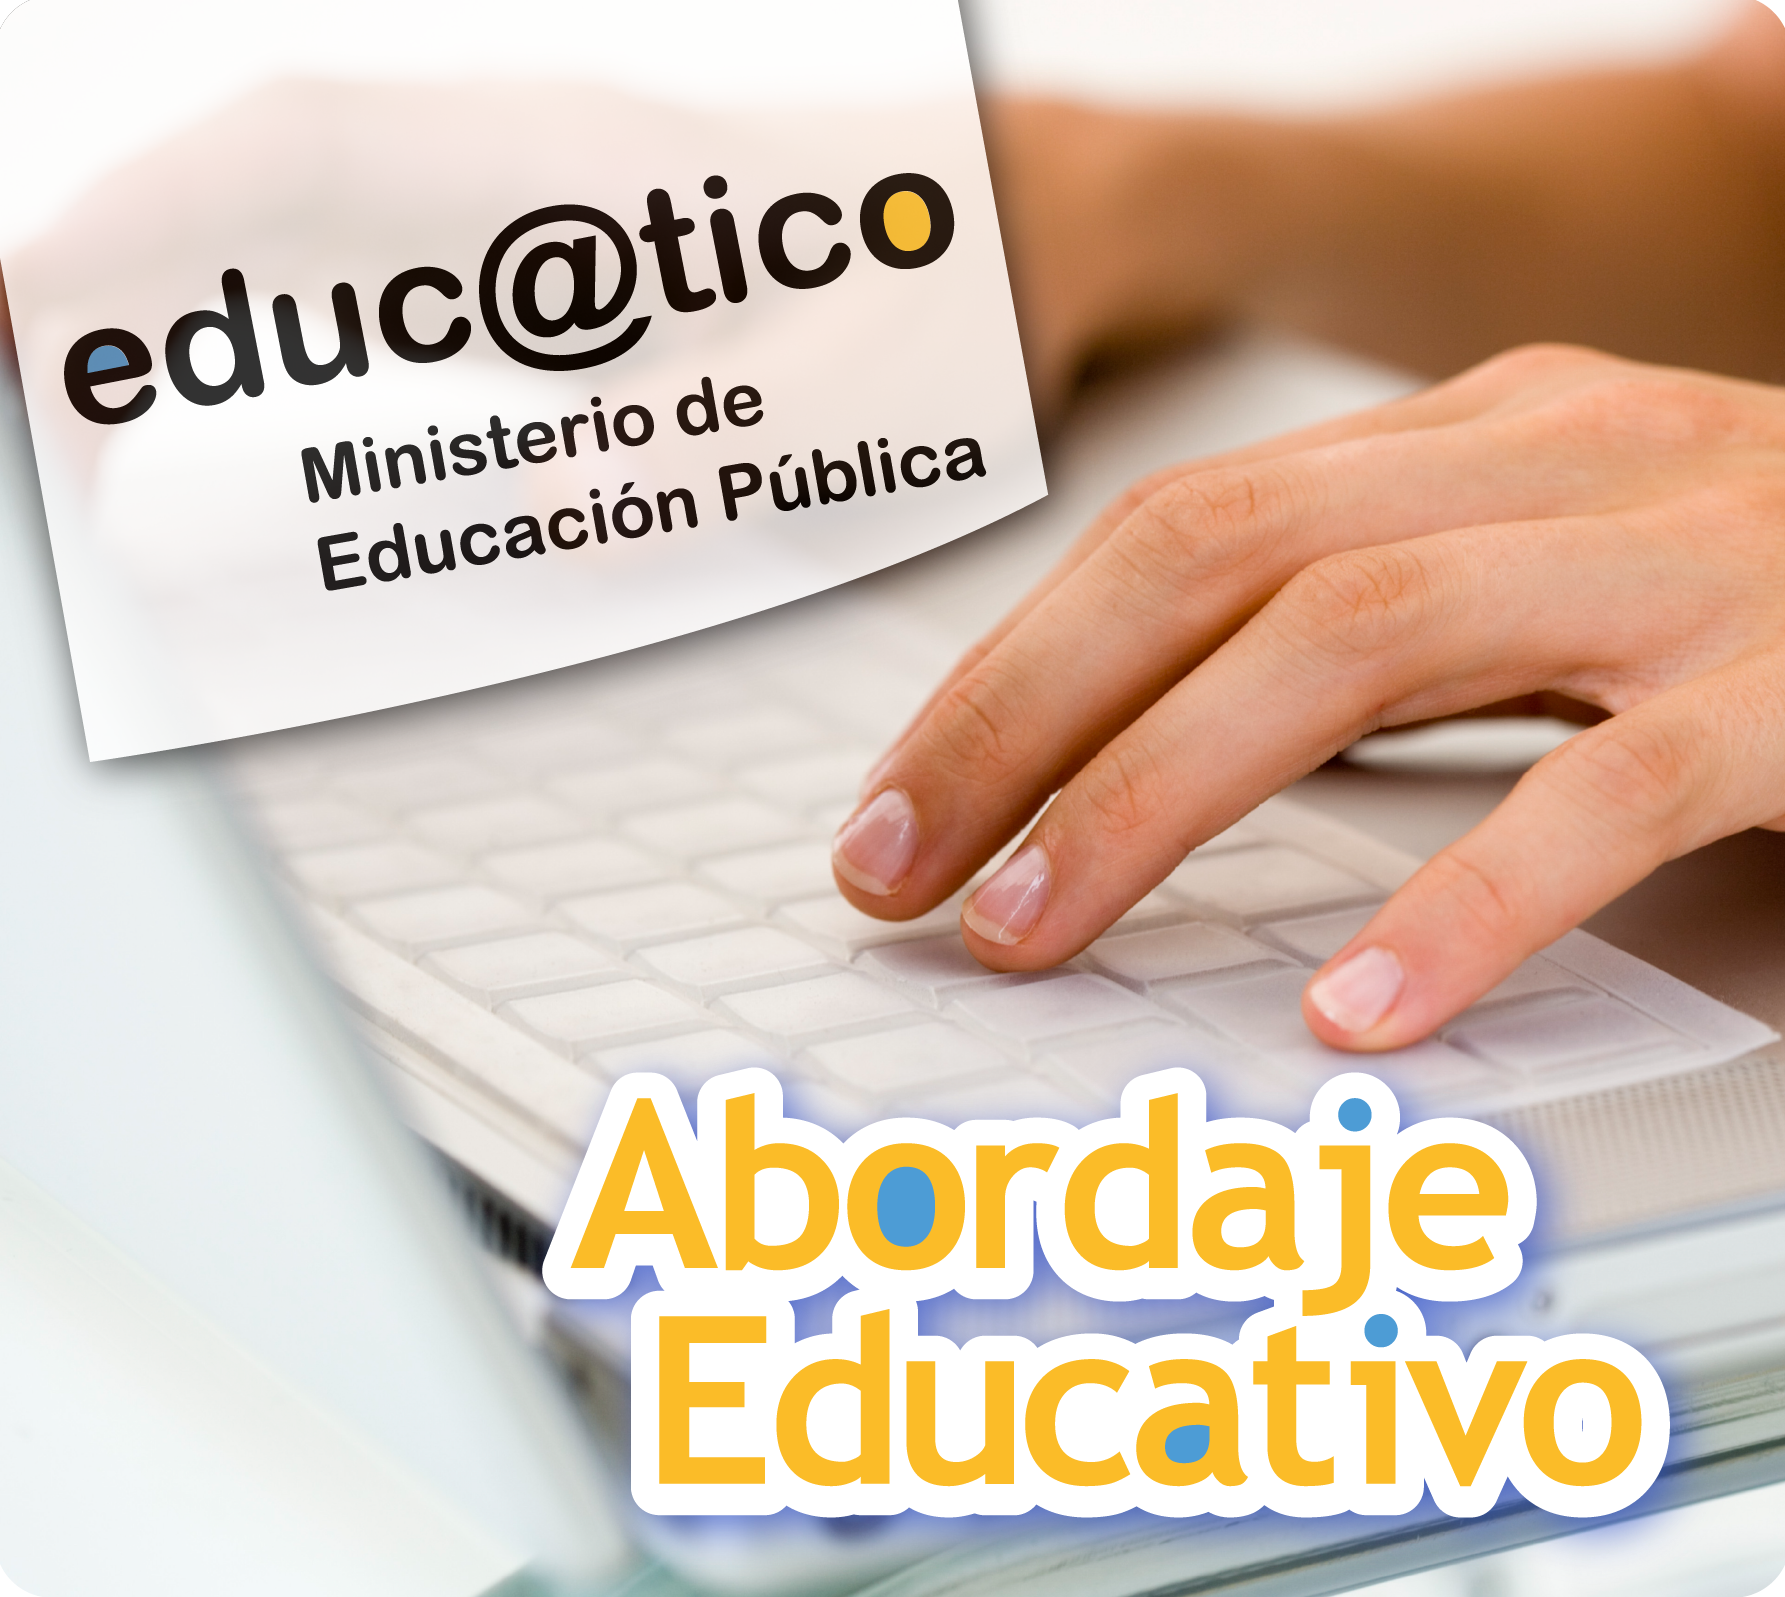 Abordaje Educativo